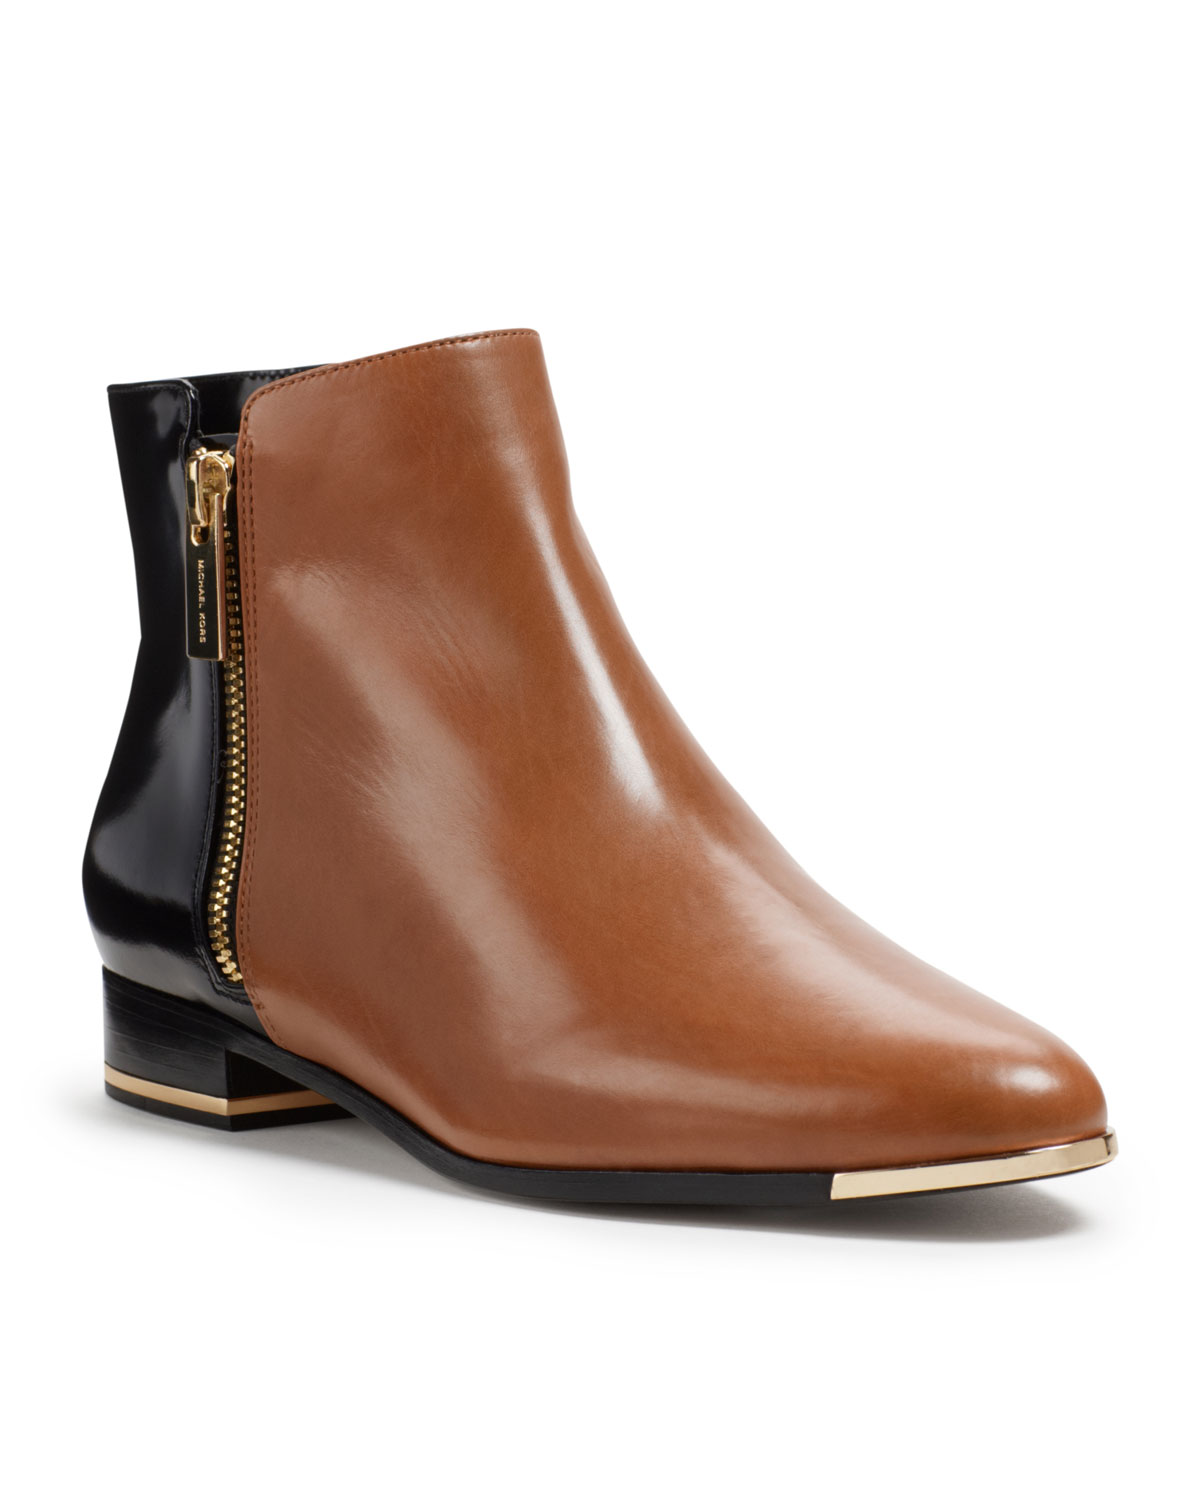 michael kors cindra twotone ankle boot in brown black lyst. Black Bedroom Furniture Sets. Home Design Ideas